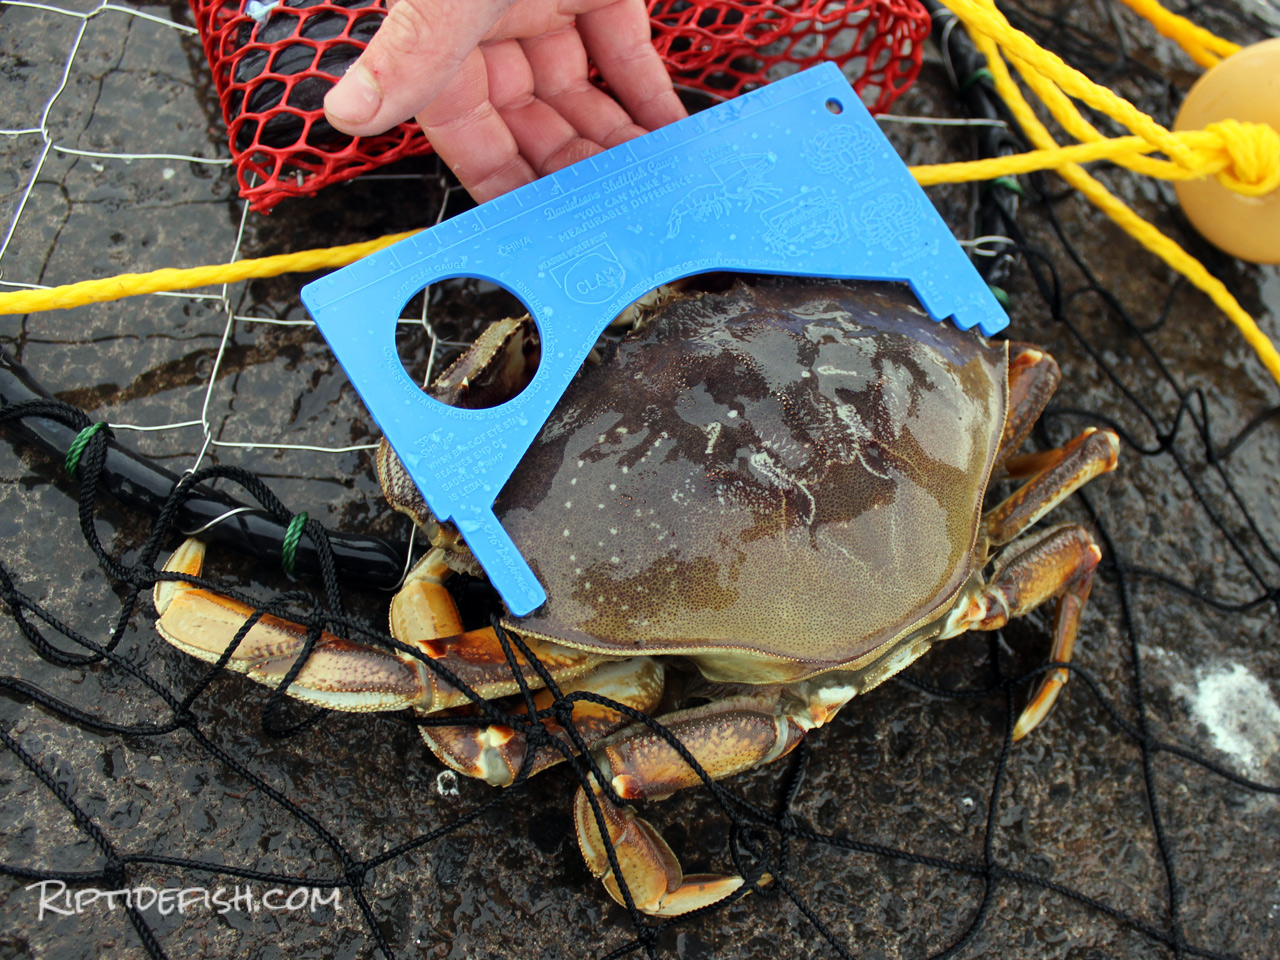 Crab measuring device